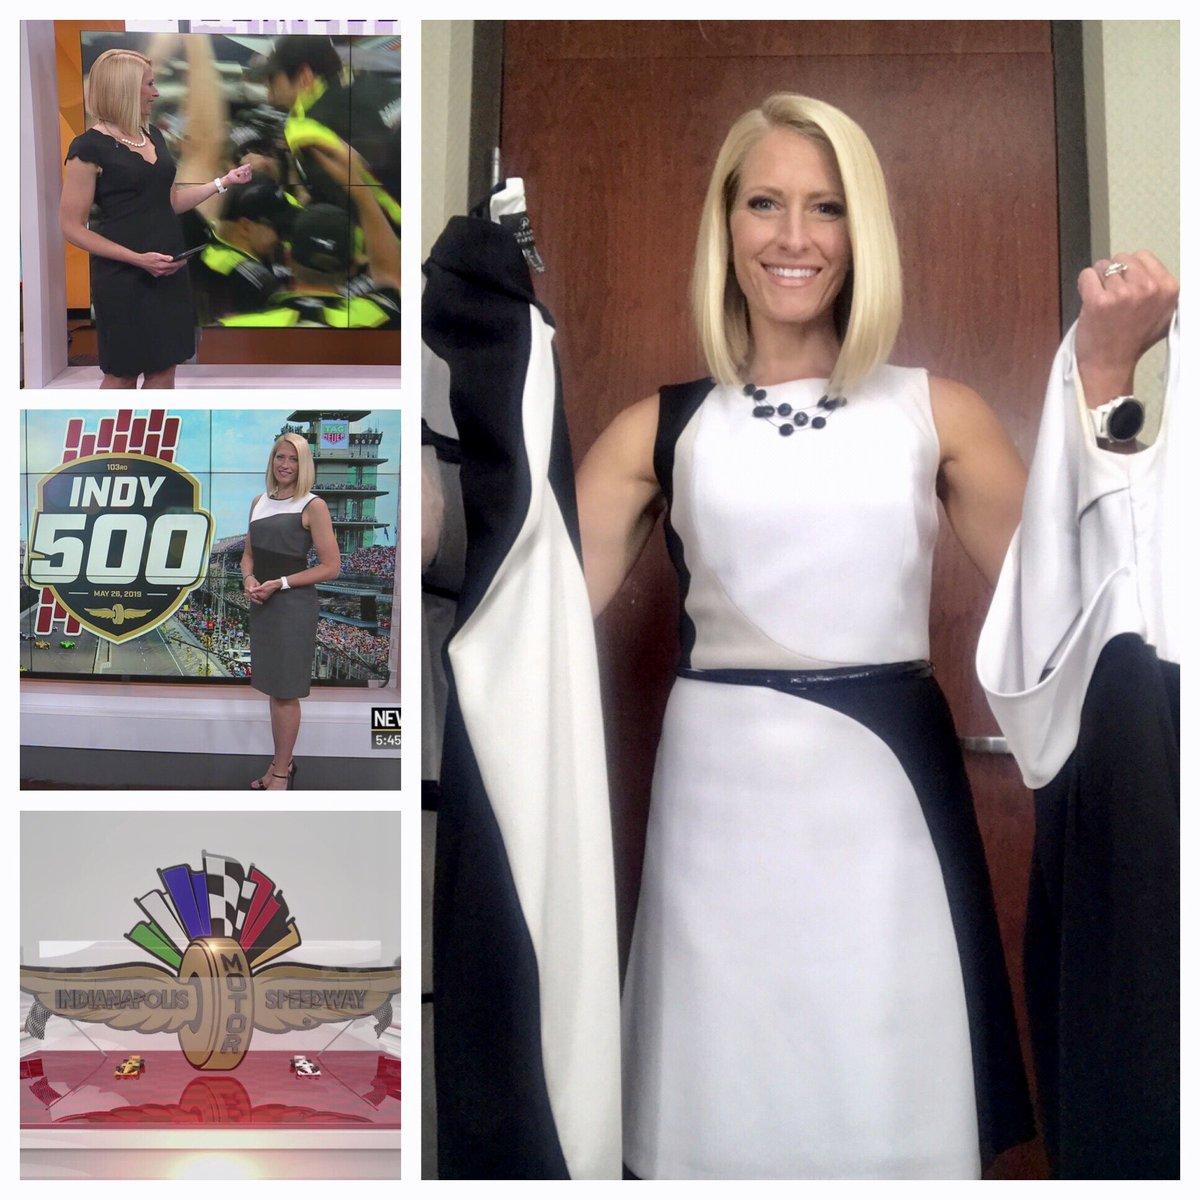 I don't always call attention to what I wear to work but when I do, there's a theme    Two more days of black and white this week leading up to #DaybreakRaceday @IMS! Always a fun morning on @WISH_TV #Daybreak8 <br>http://pic.twitter.com/AKIABjsp6k